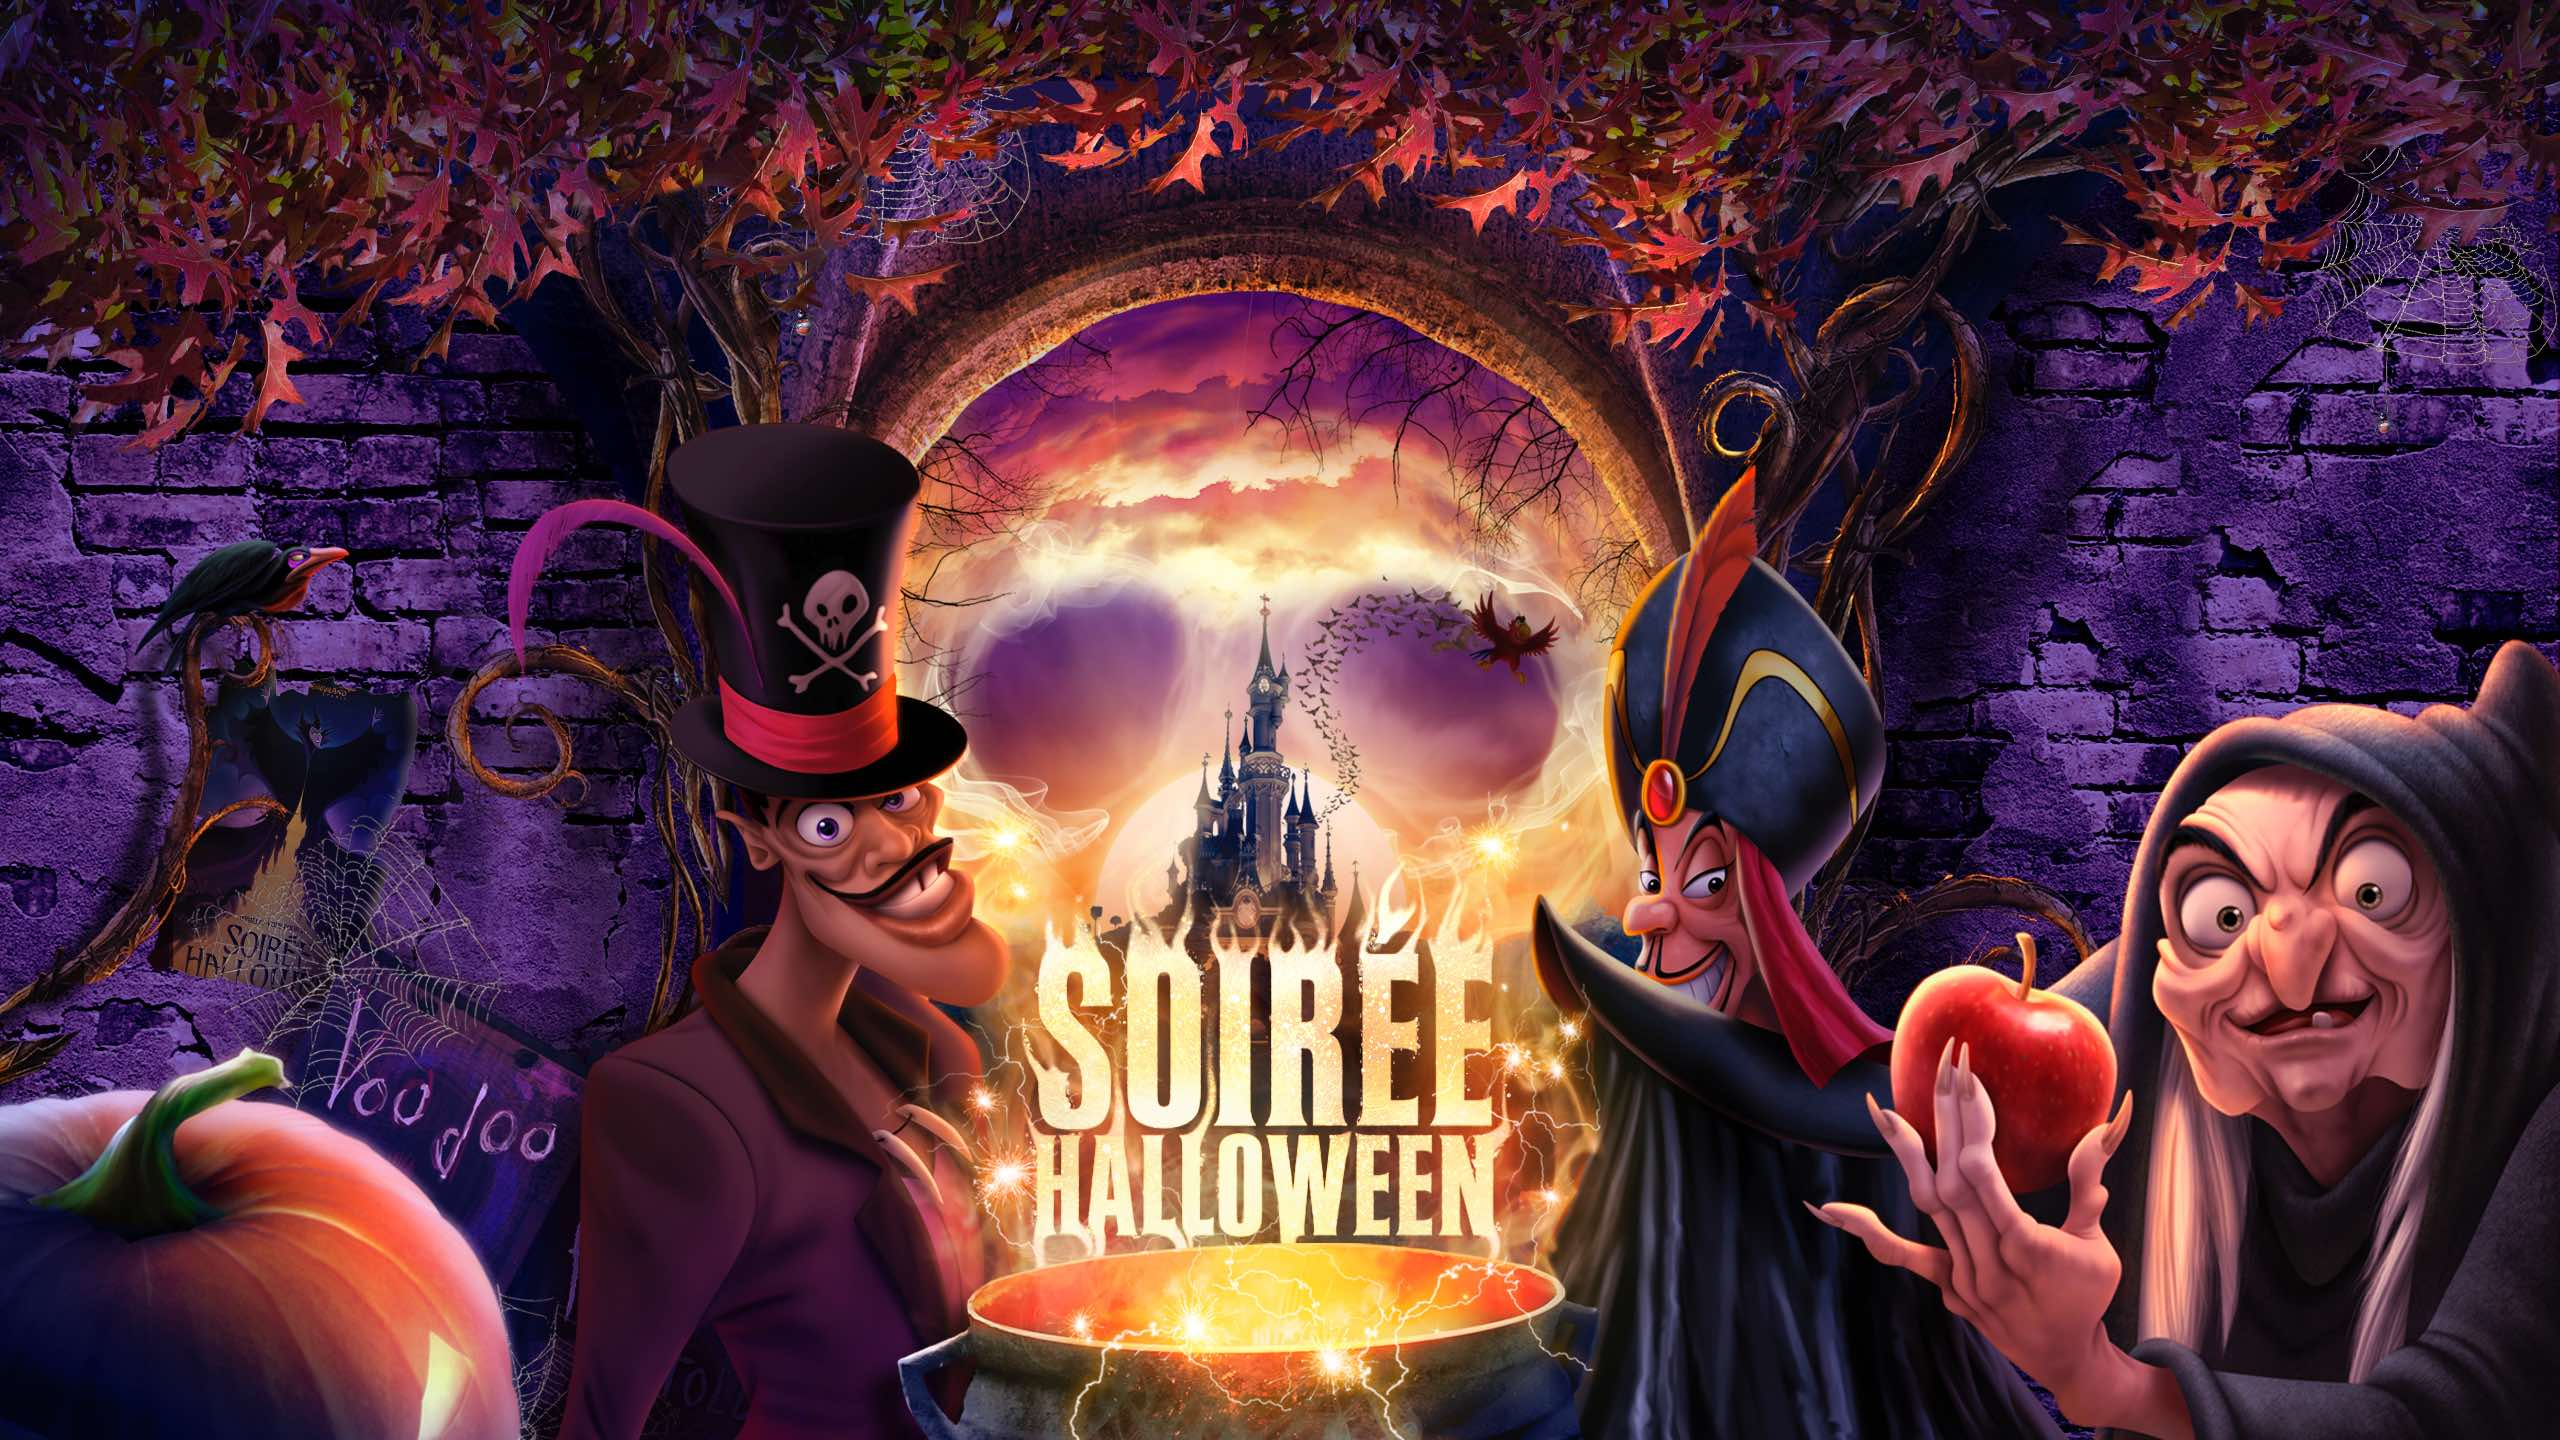 Hello disneyland le blog n 1 sur disneyland paris - Image de halloween ...